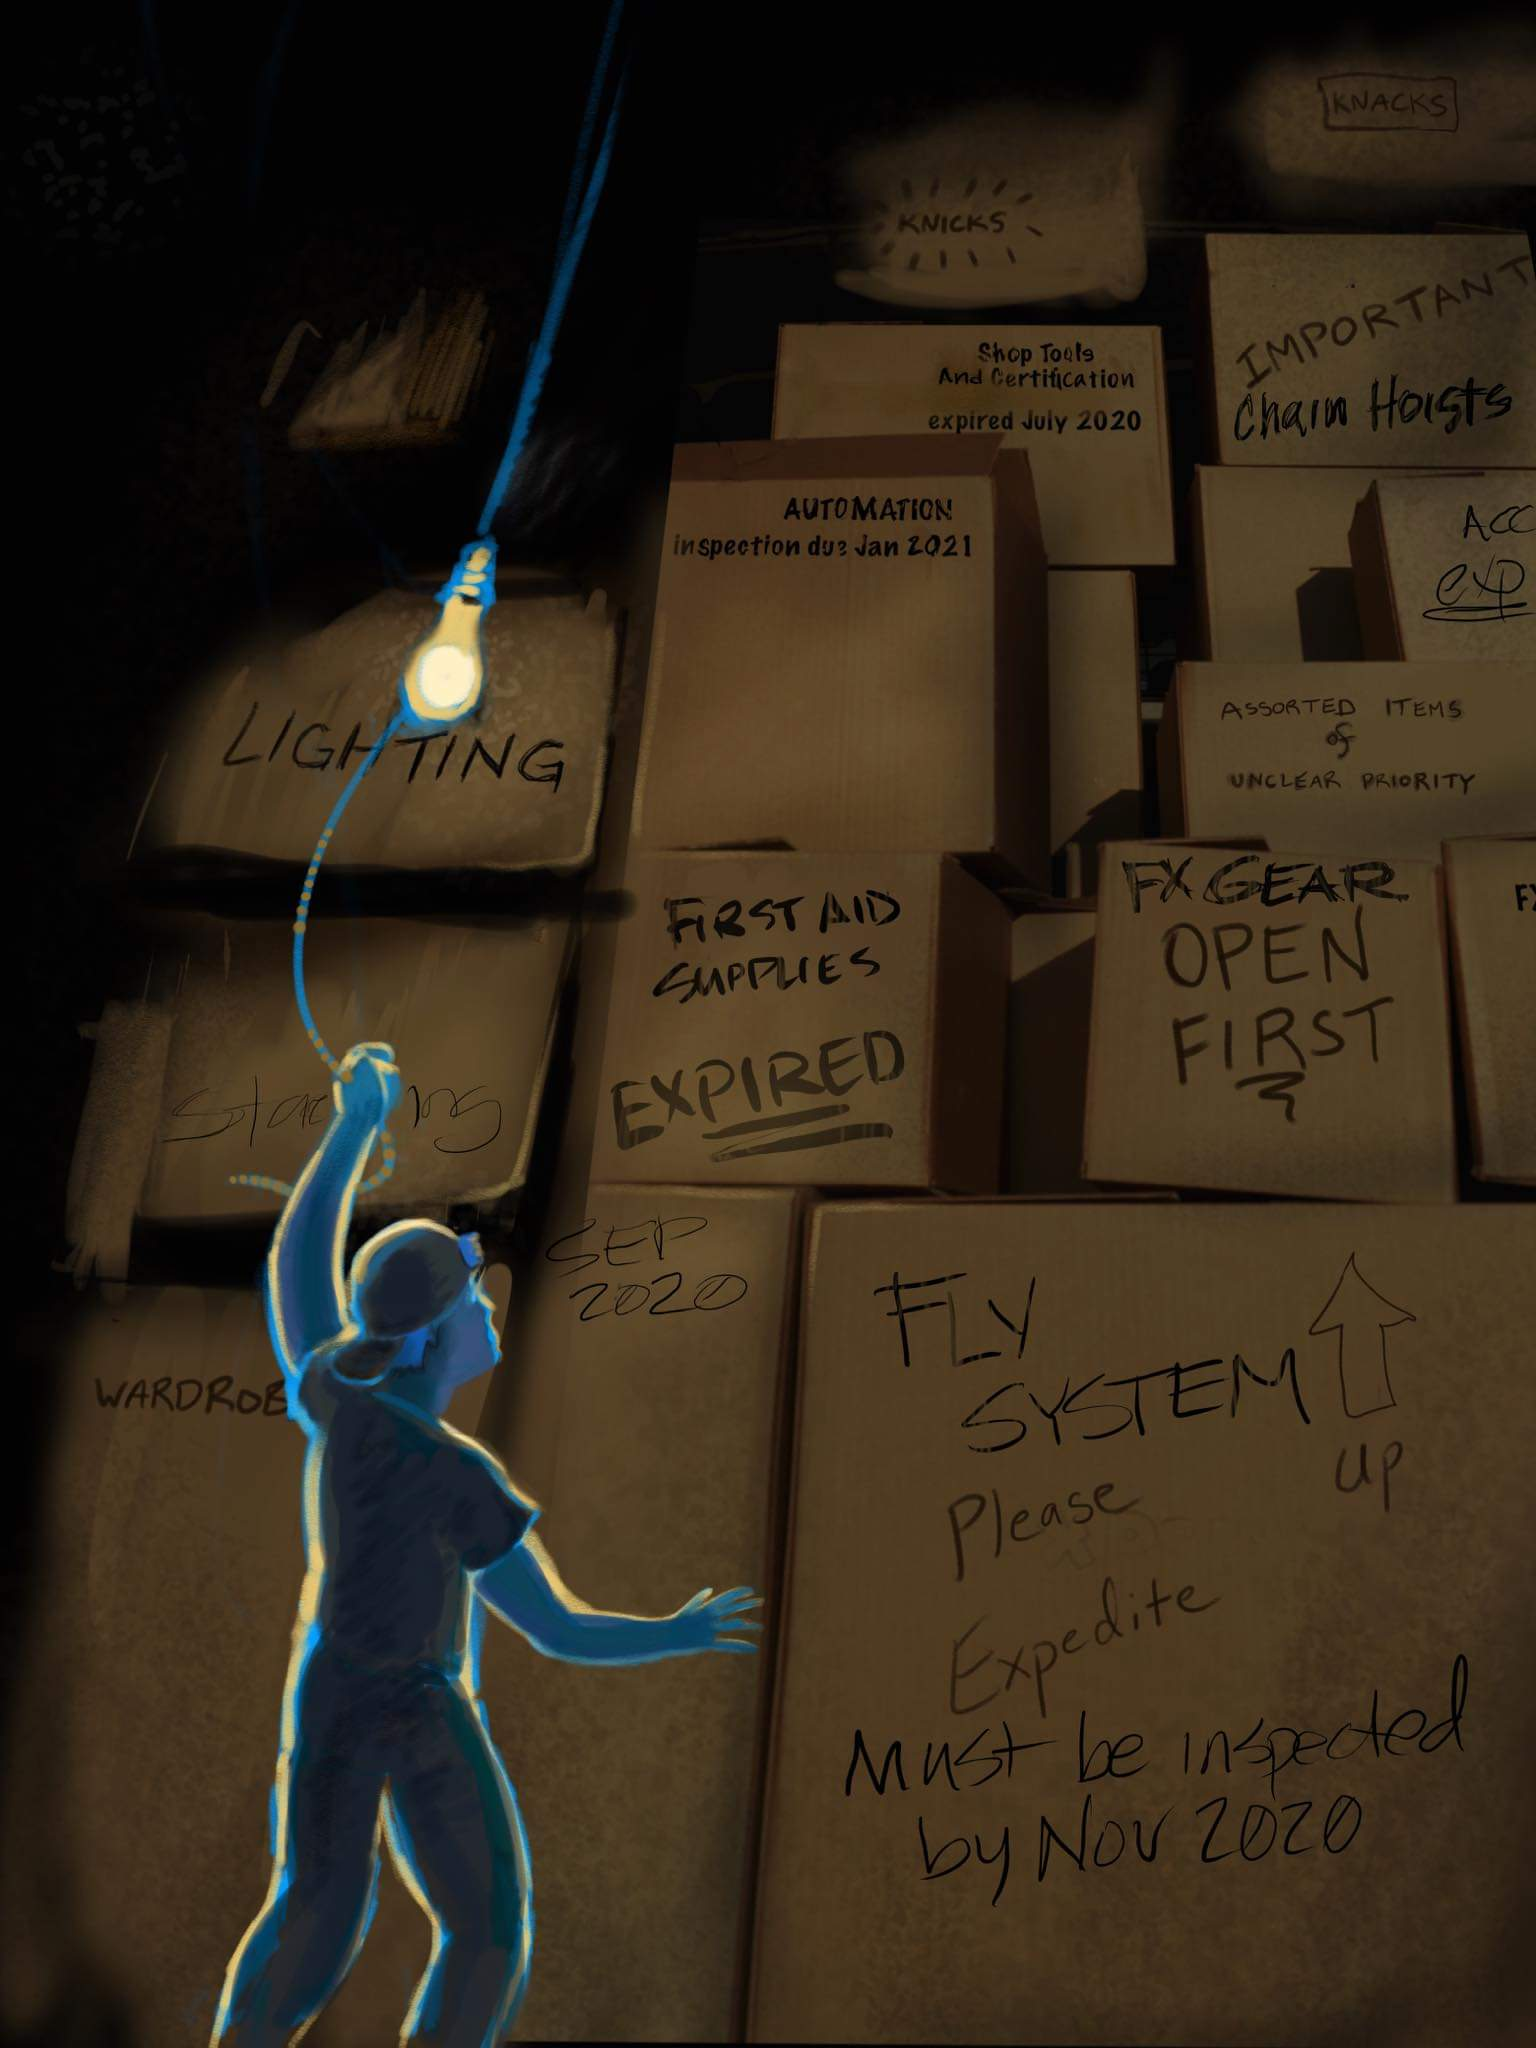 """Cartoon stagehand + boxes labelled with systems from the article but specifically noted as EXPIRED. """"Fly system: expired August 2020"""" or """"Fire Alarms: expired December 2020"""""""